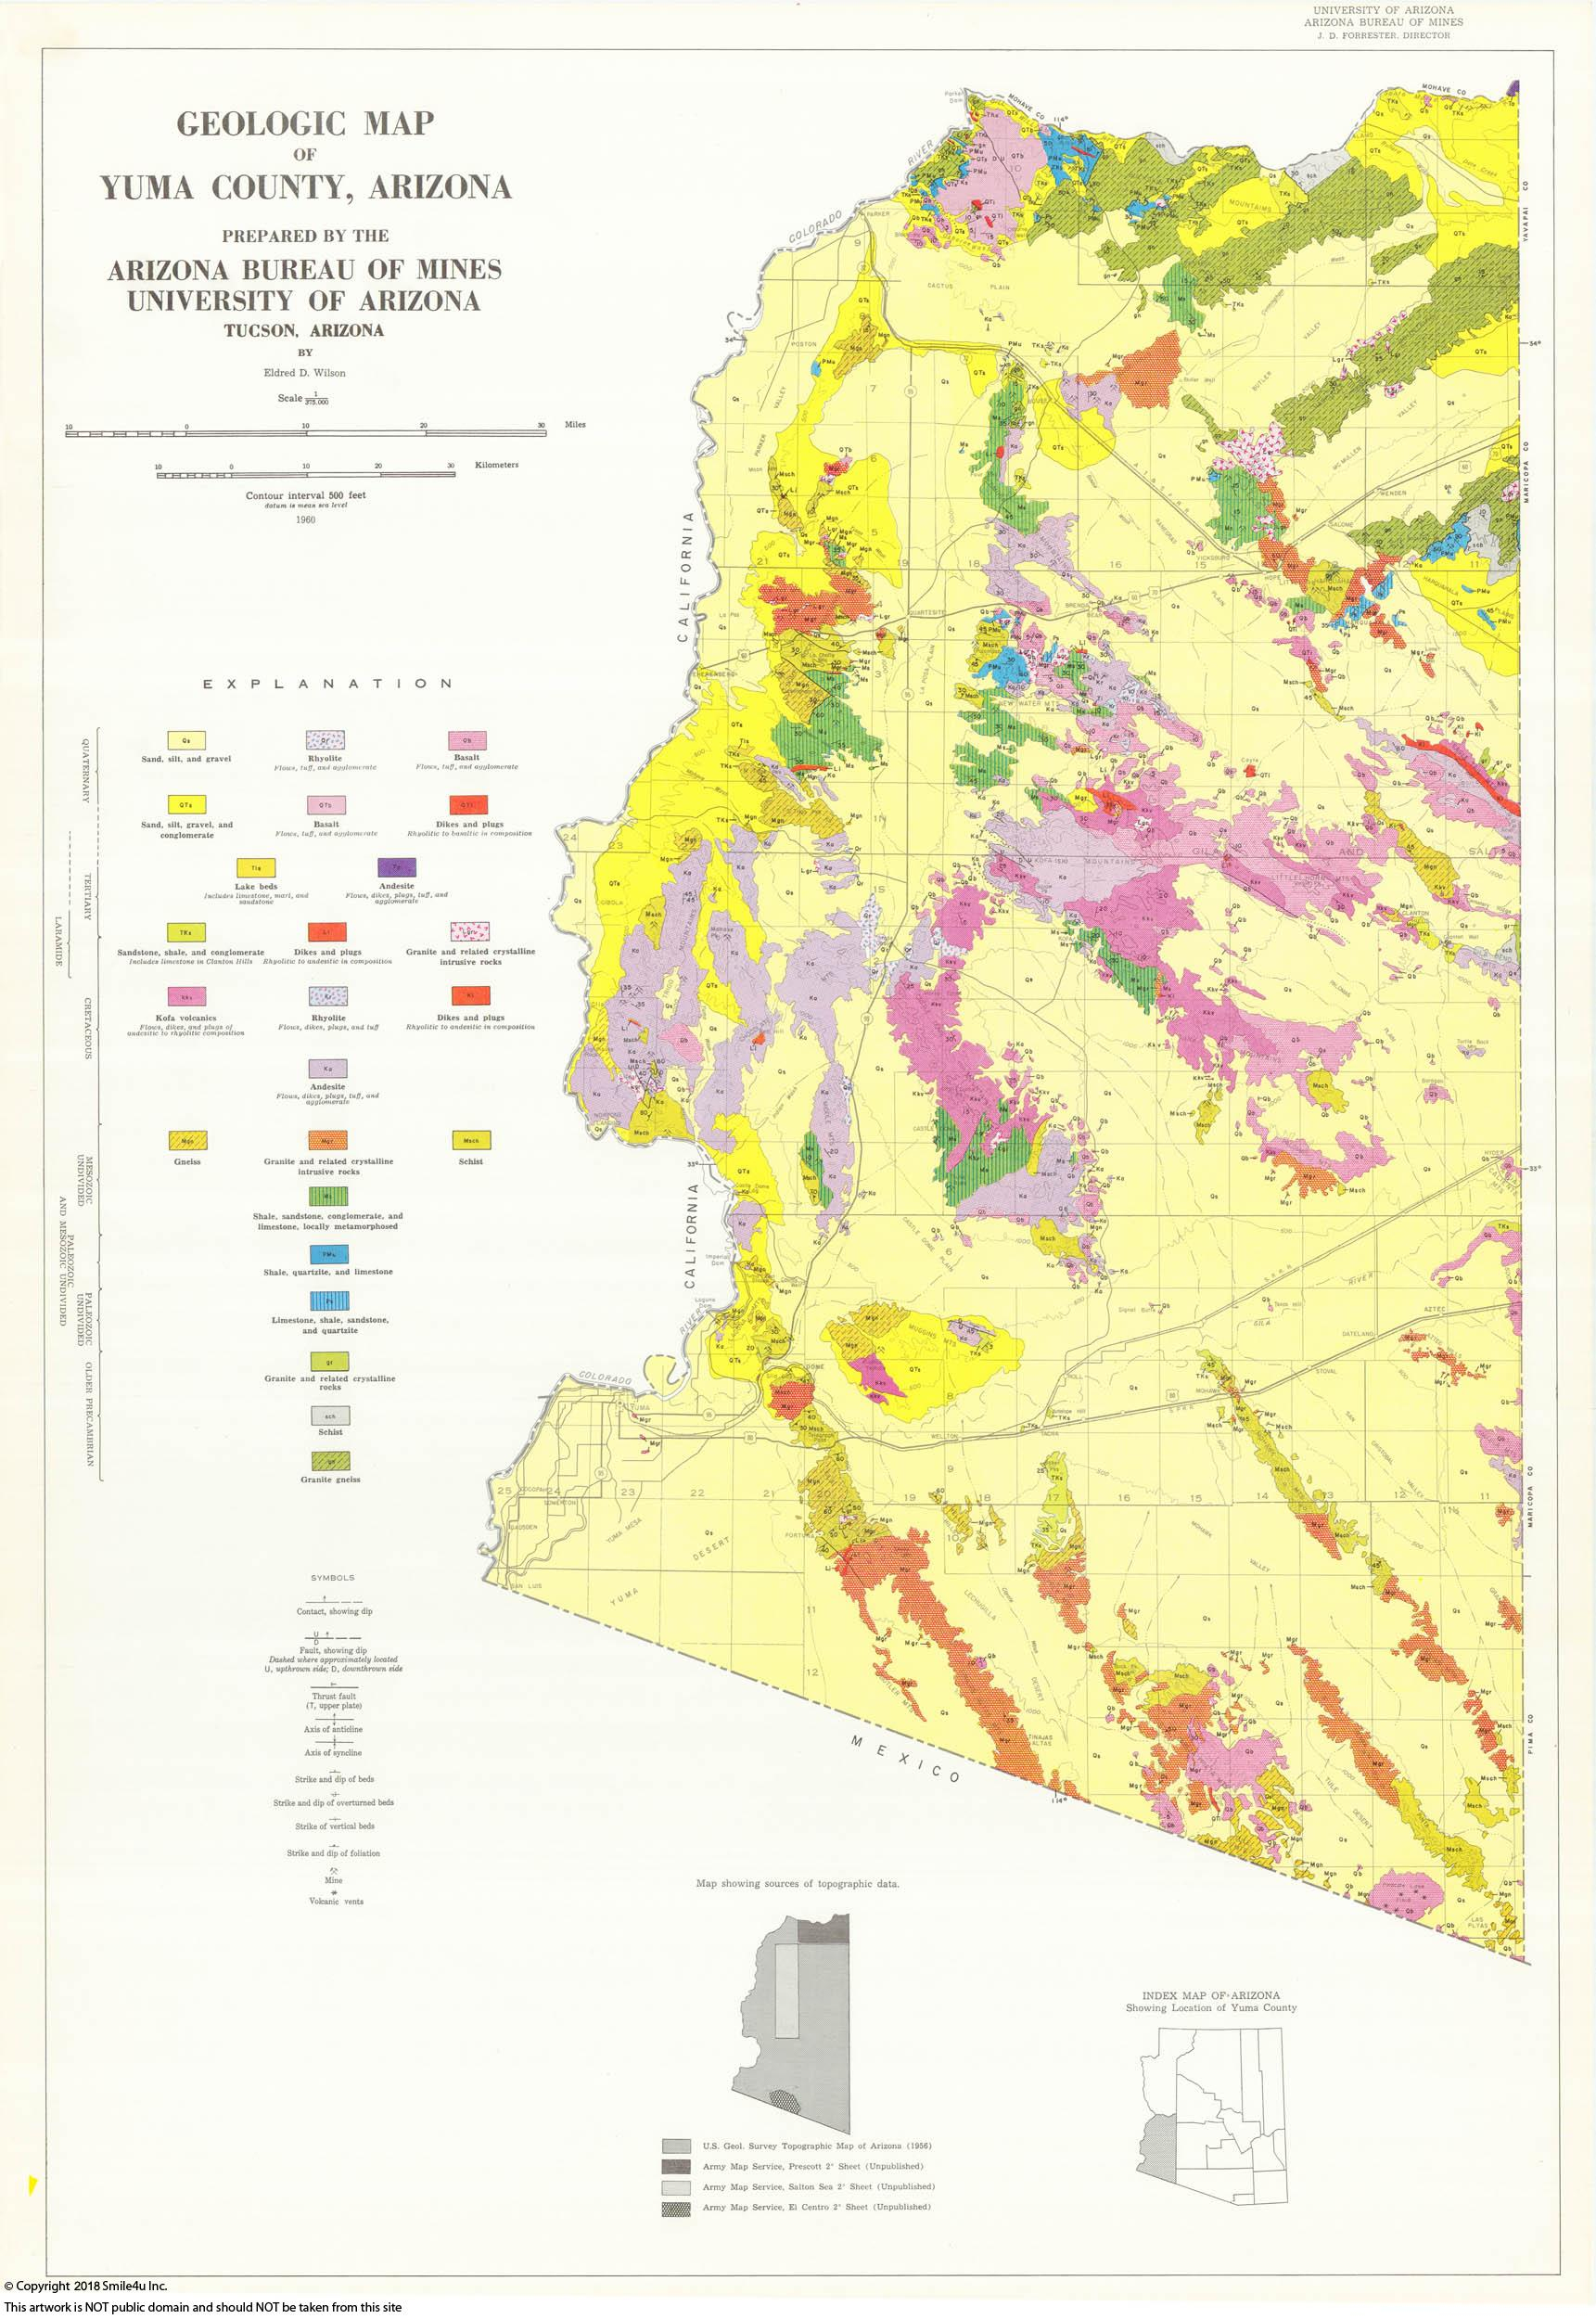 336710_watermarked_yumacounty_1960_geologicmap.jpg